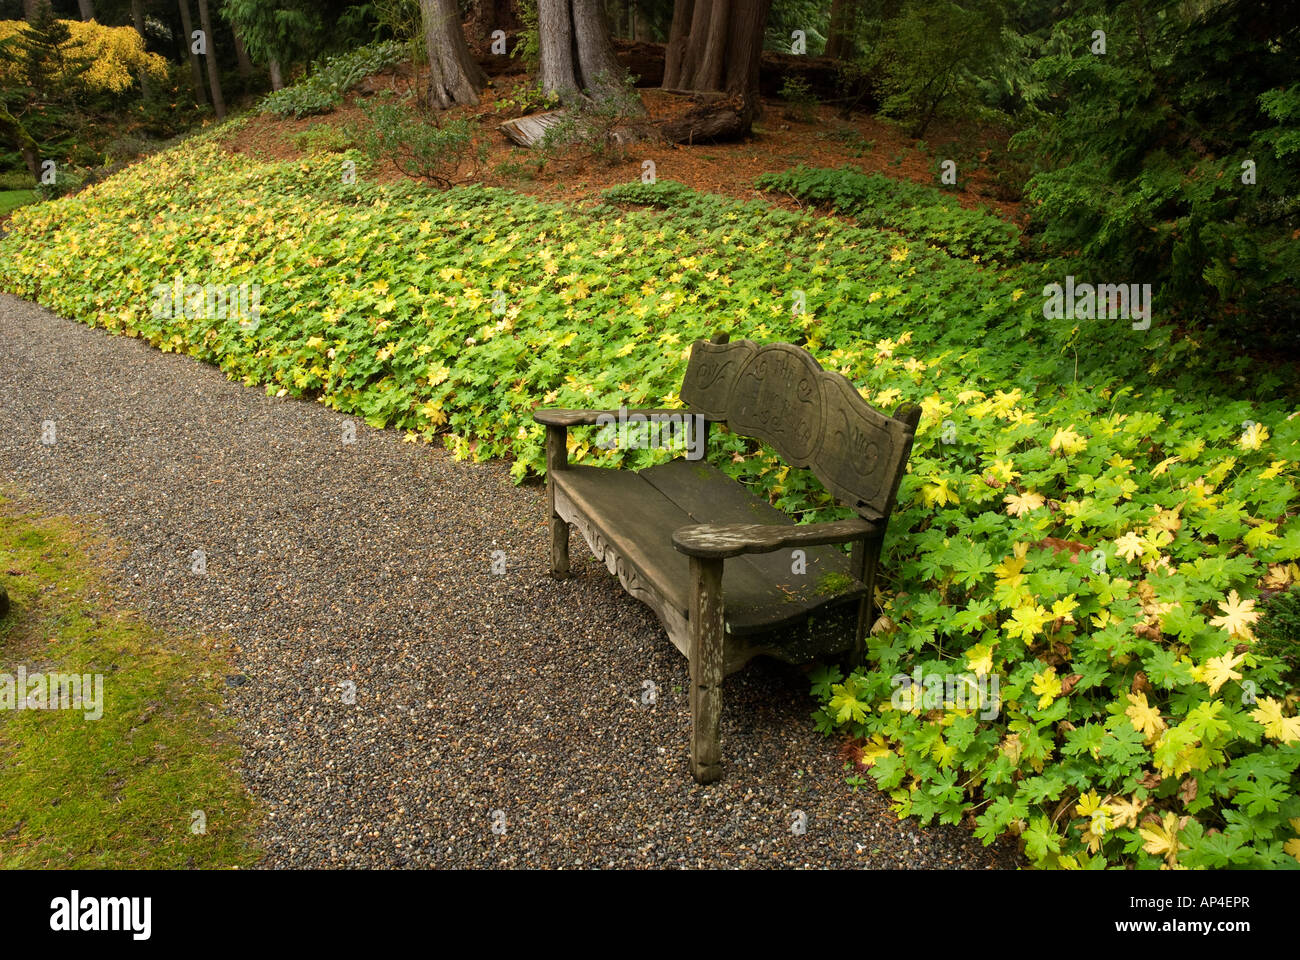 Garden Pathway With Bench At Bloedel Reserve On Bainbridge Island Washington